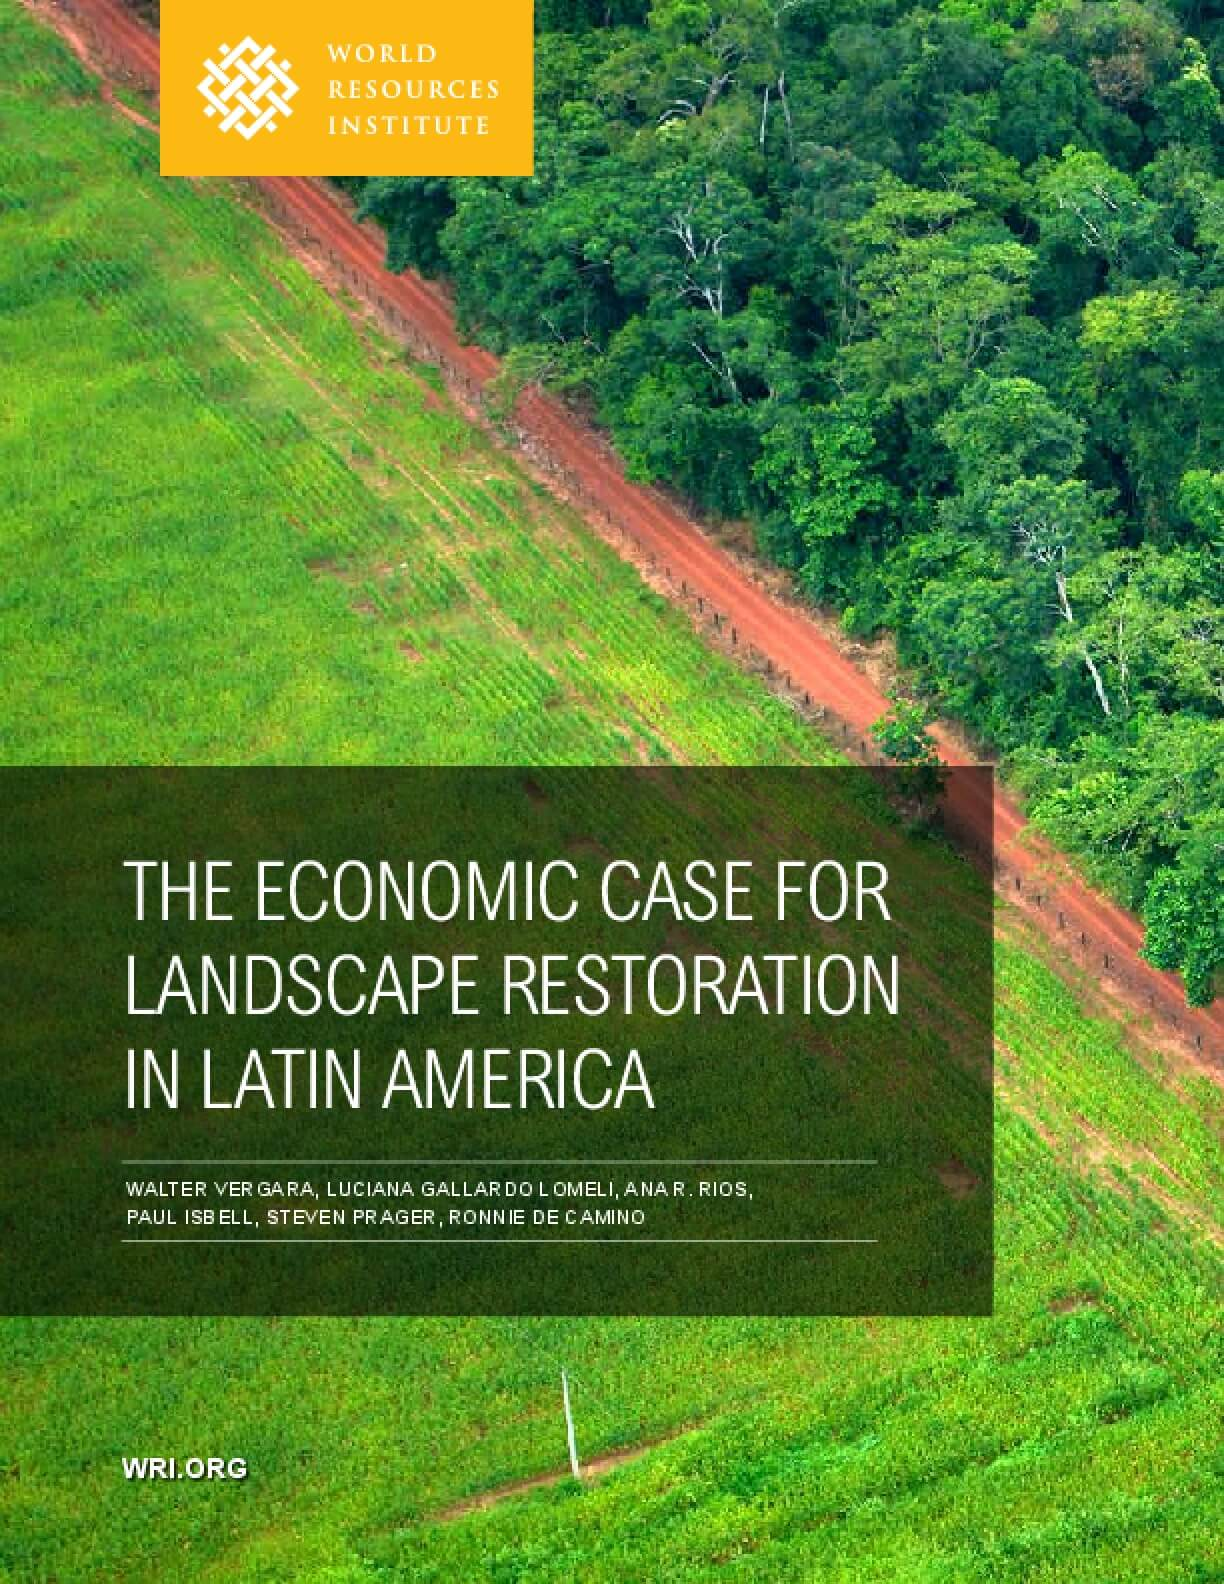 The Economic Case for Landscape Restoration in Latin America